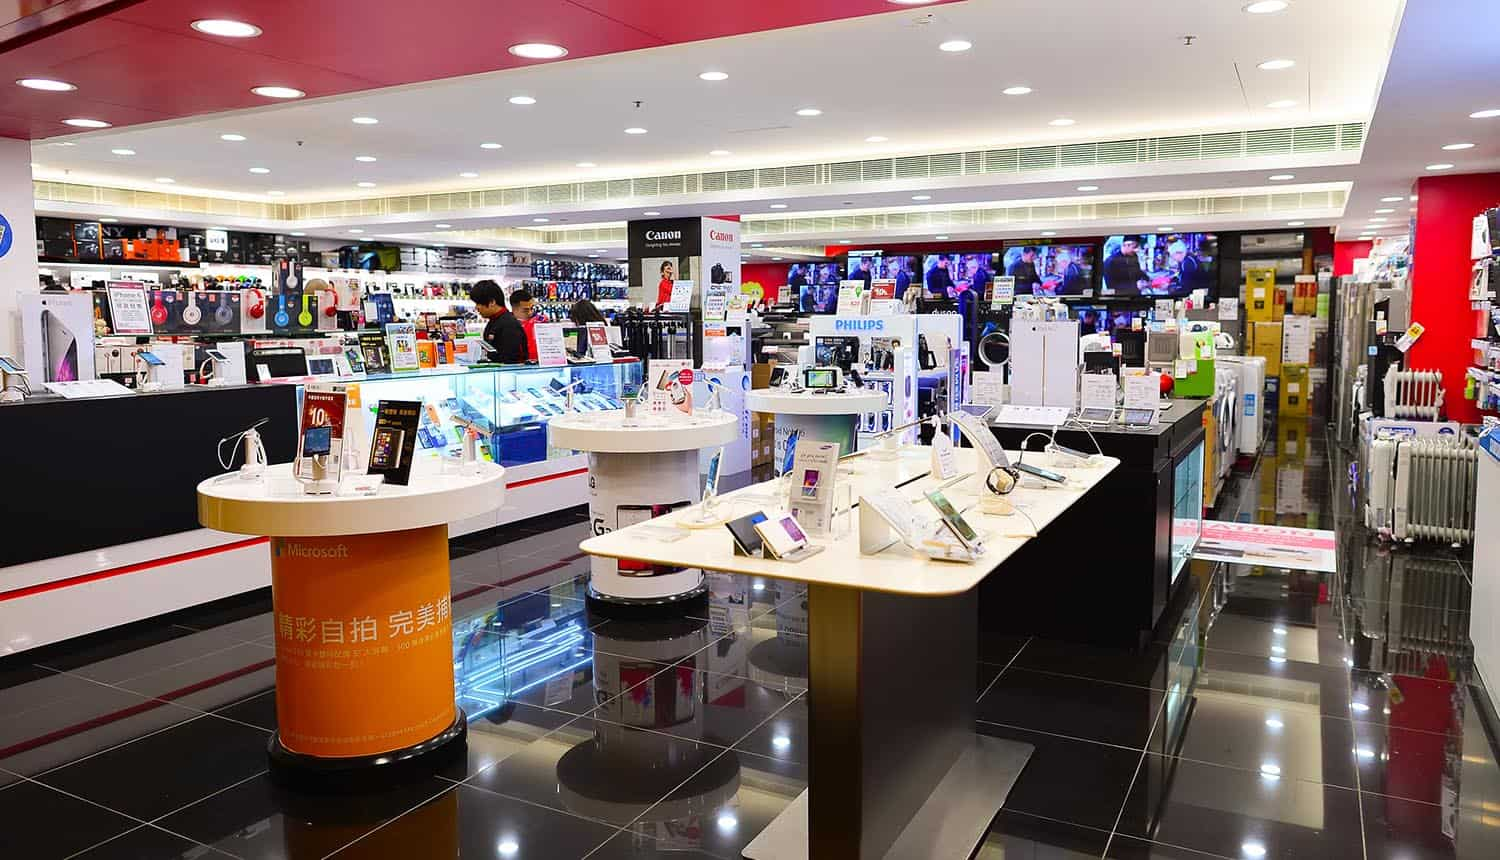 Electronics store selling IoT devices showing need for IoT security and privacy label